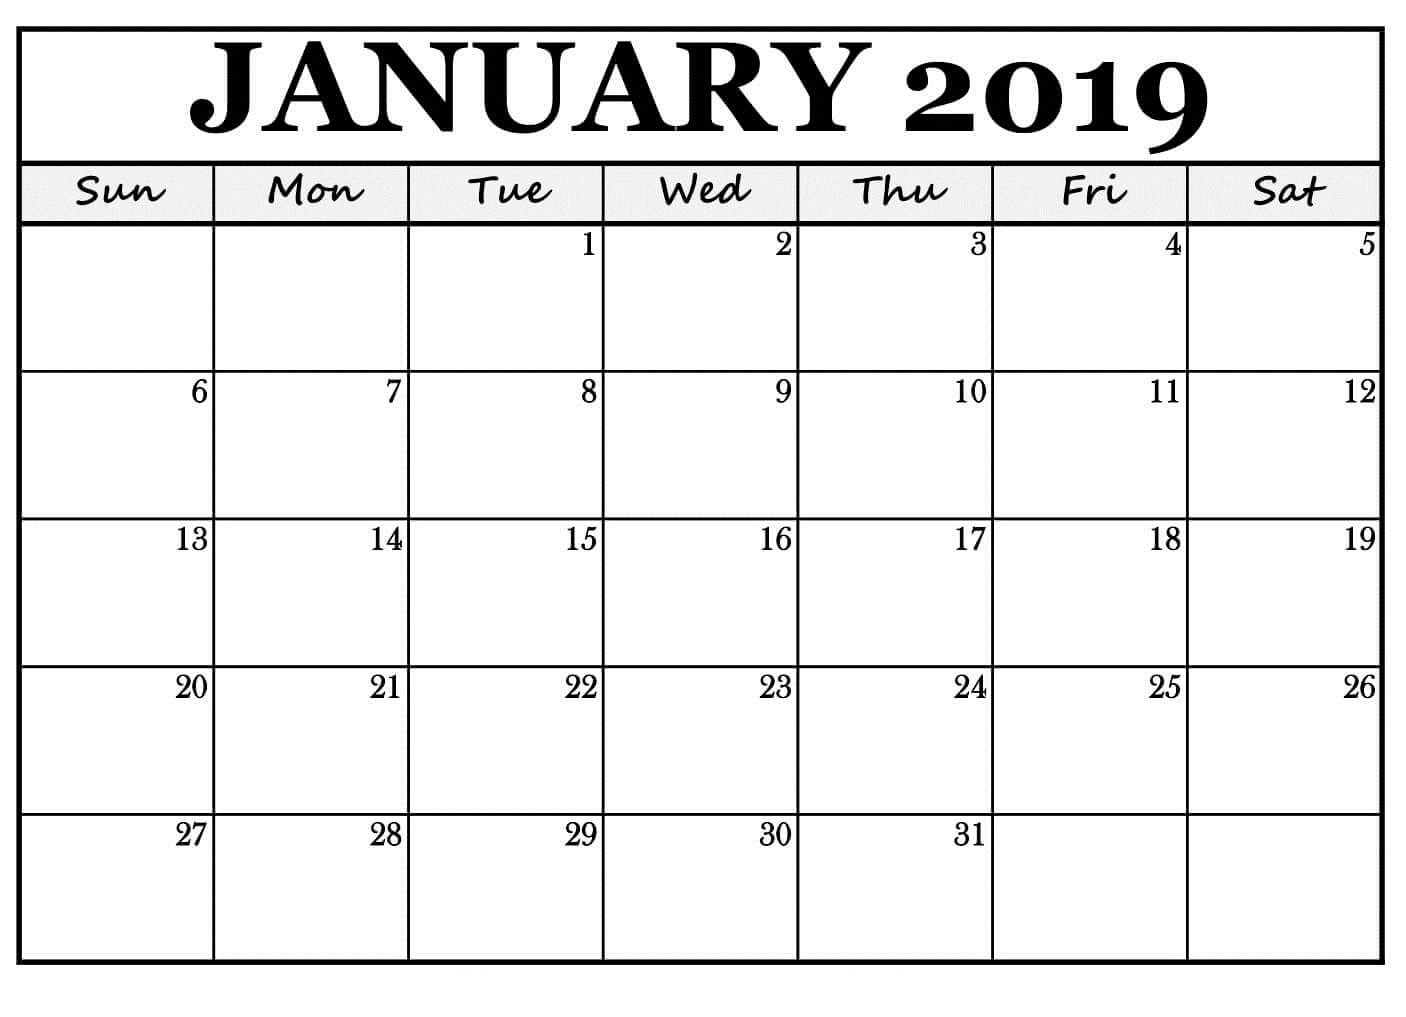 Calendar 2019 January January 2019 Calendar Reminders Free Template | January 2019